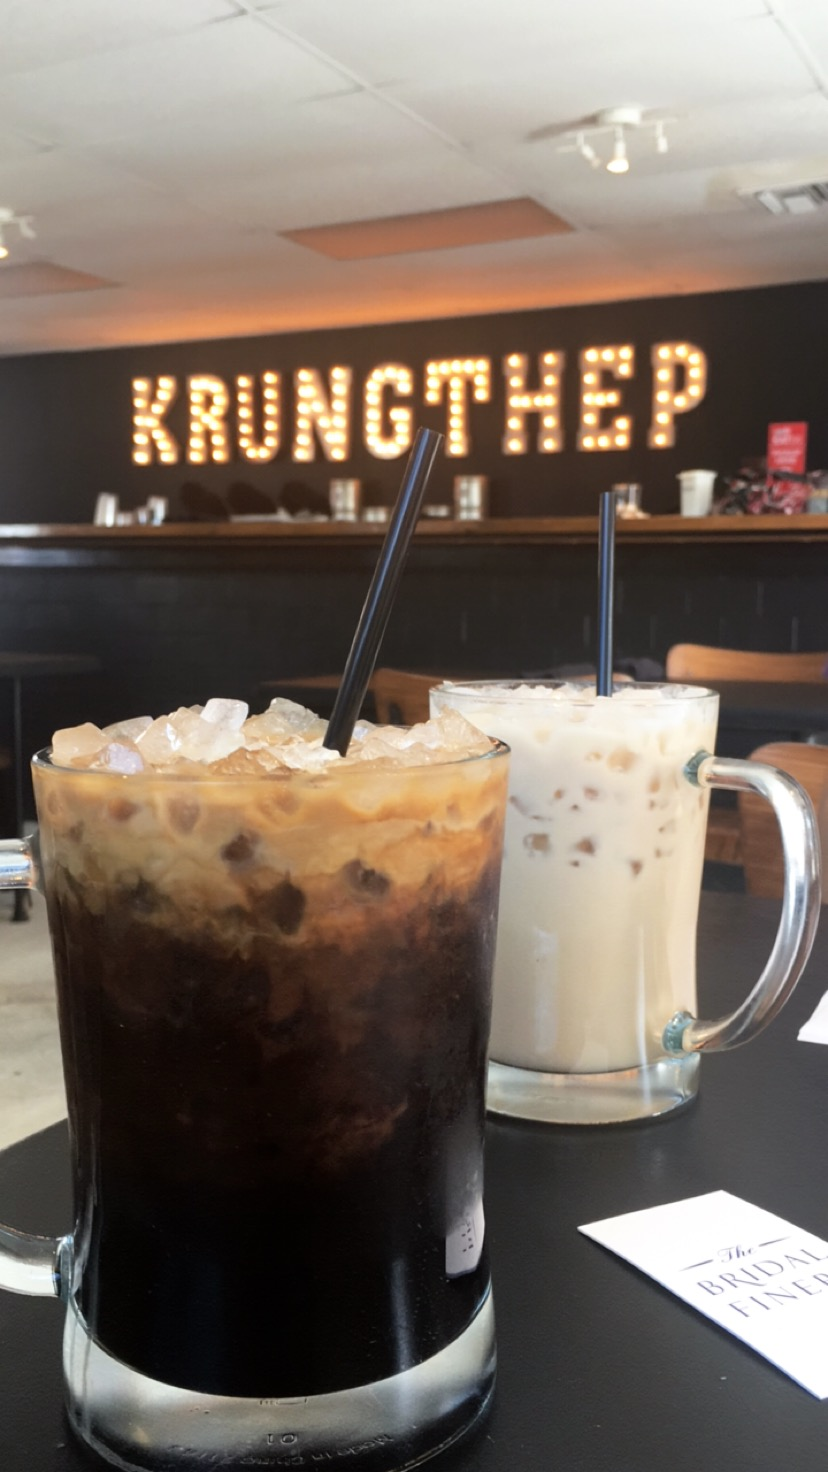 Krungthep - Krungthep (means Bangkok)is located off of Fairbanks and features Thai coffees, teas, and sandwiches.Earlier this year I had the opportunity to travel to Bangkok so I enjoyed reminiscing with these flavors. We returned here a week later to enjoy more bites!